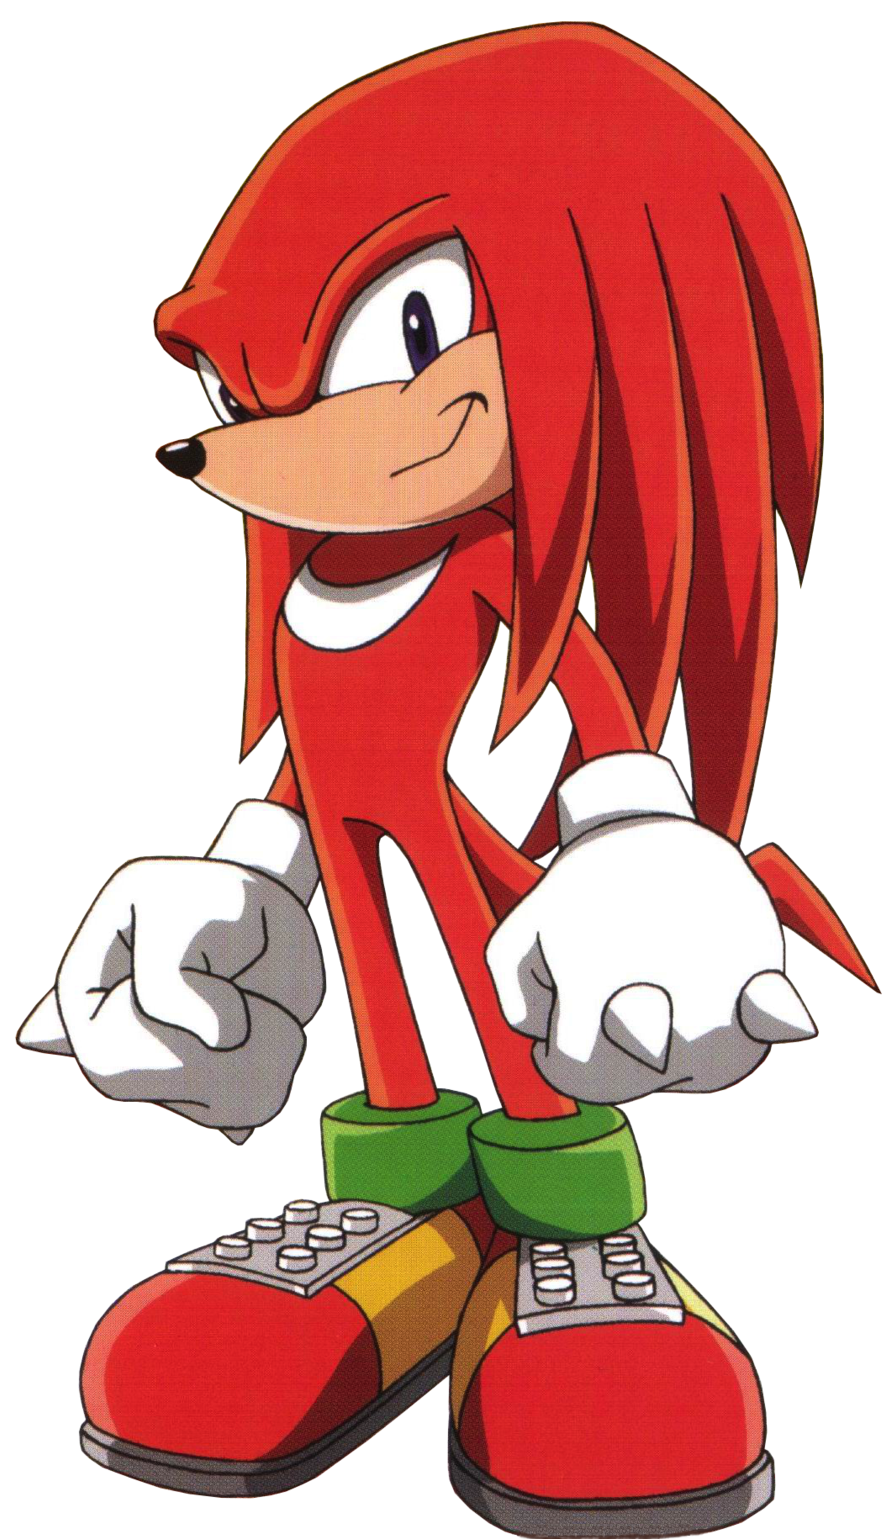 Knuckles the echidna fanmade. Fist clipart knuckle